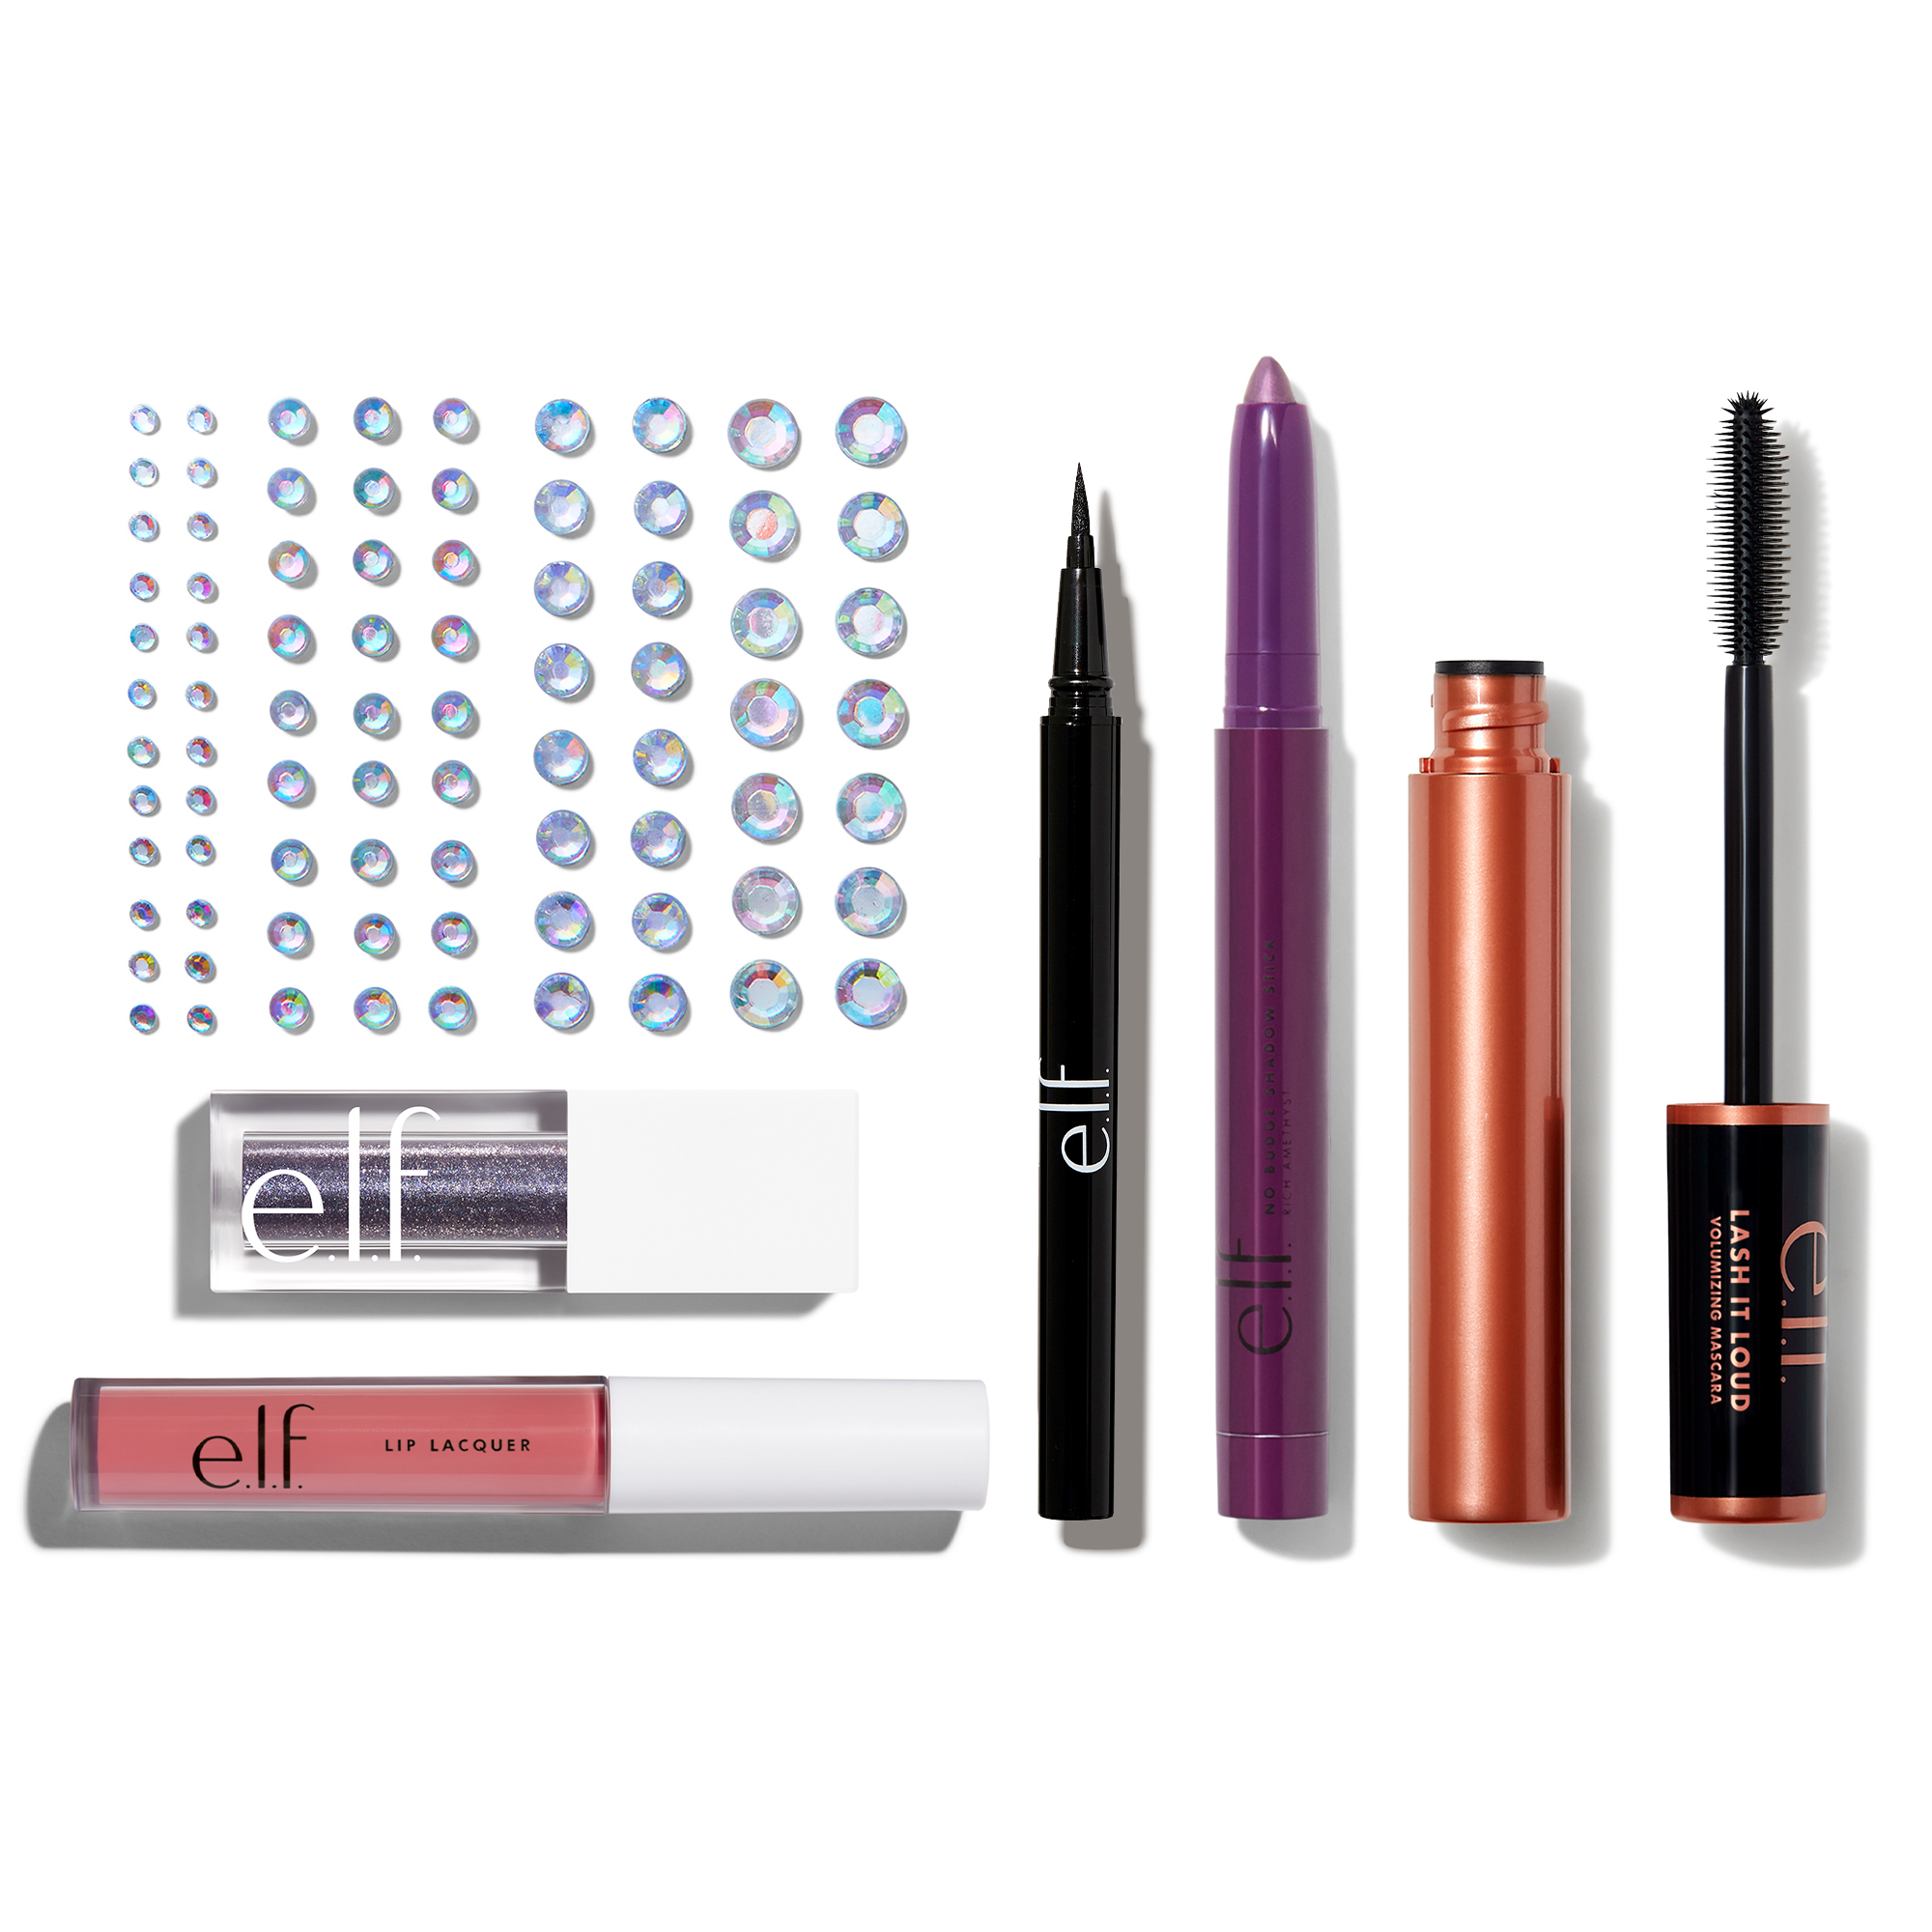 You are currently viewing Halloween Makeup at e.l.f 30% Off